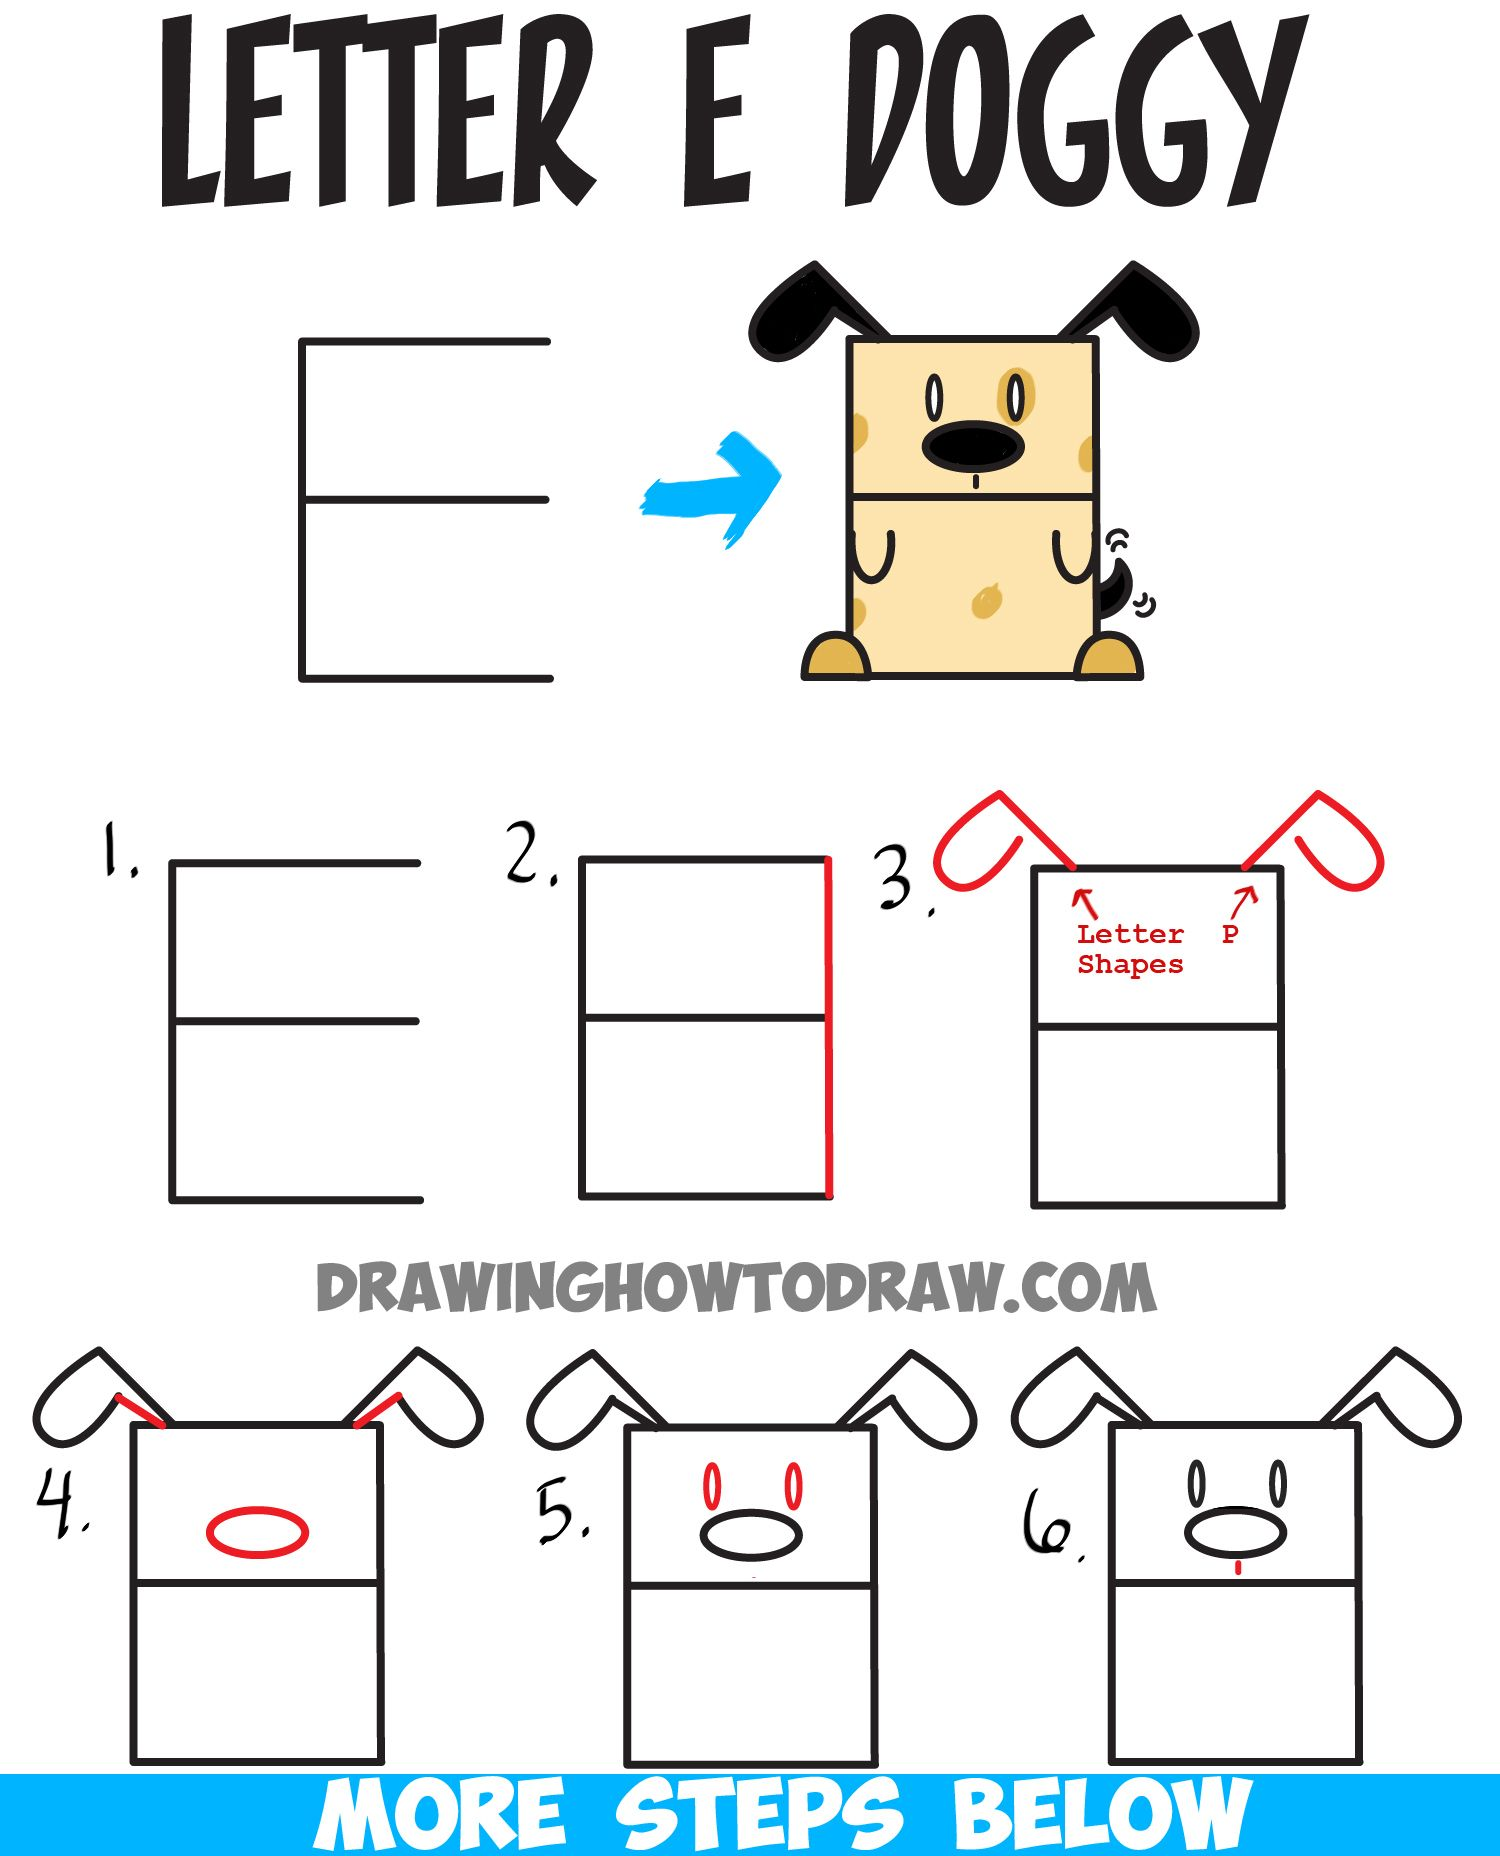 How to Draw a Cartoon Dog from Uppercase Letter E Easy Steps